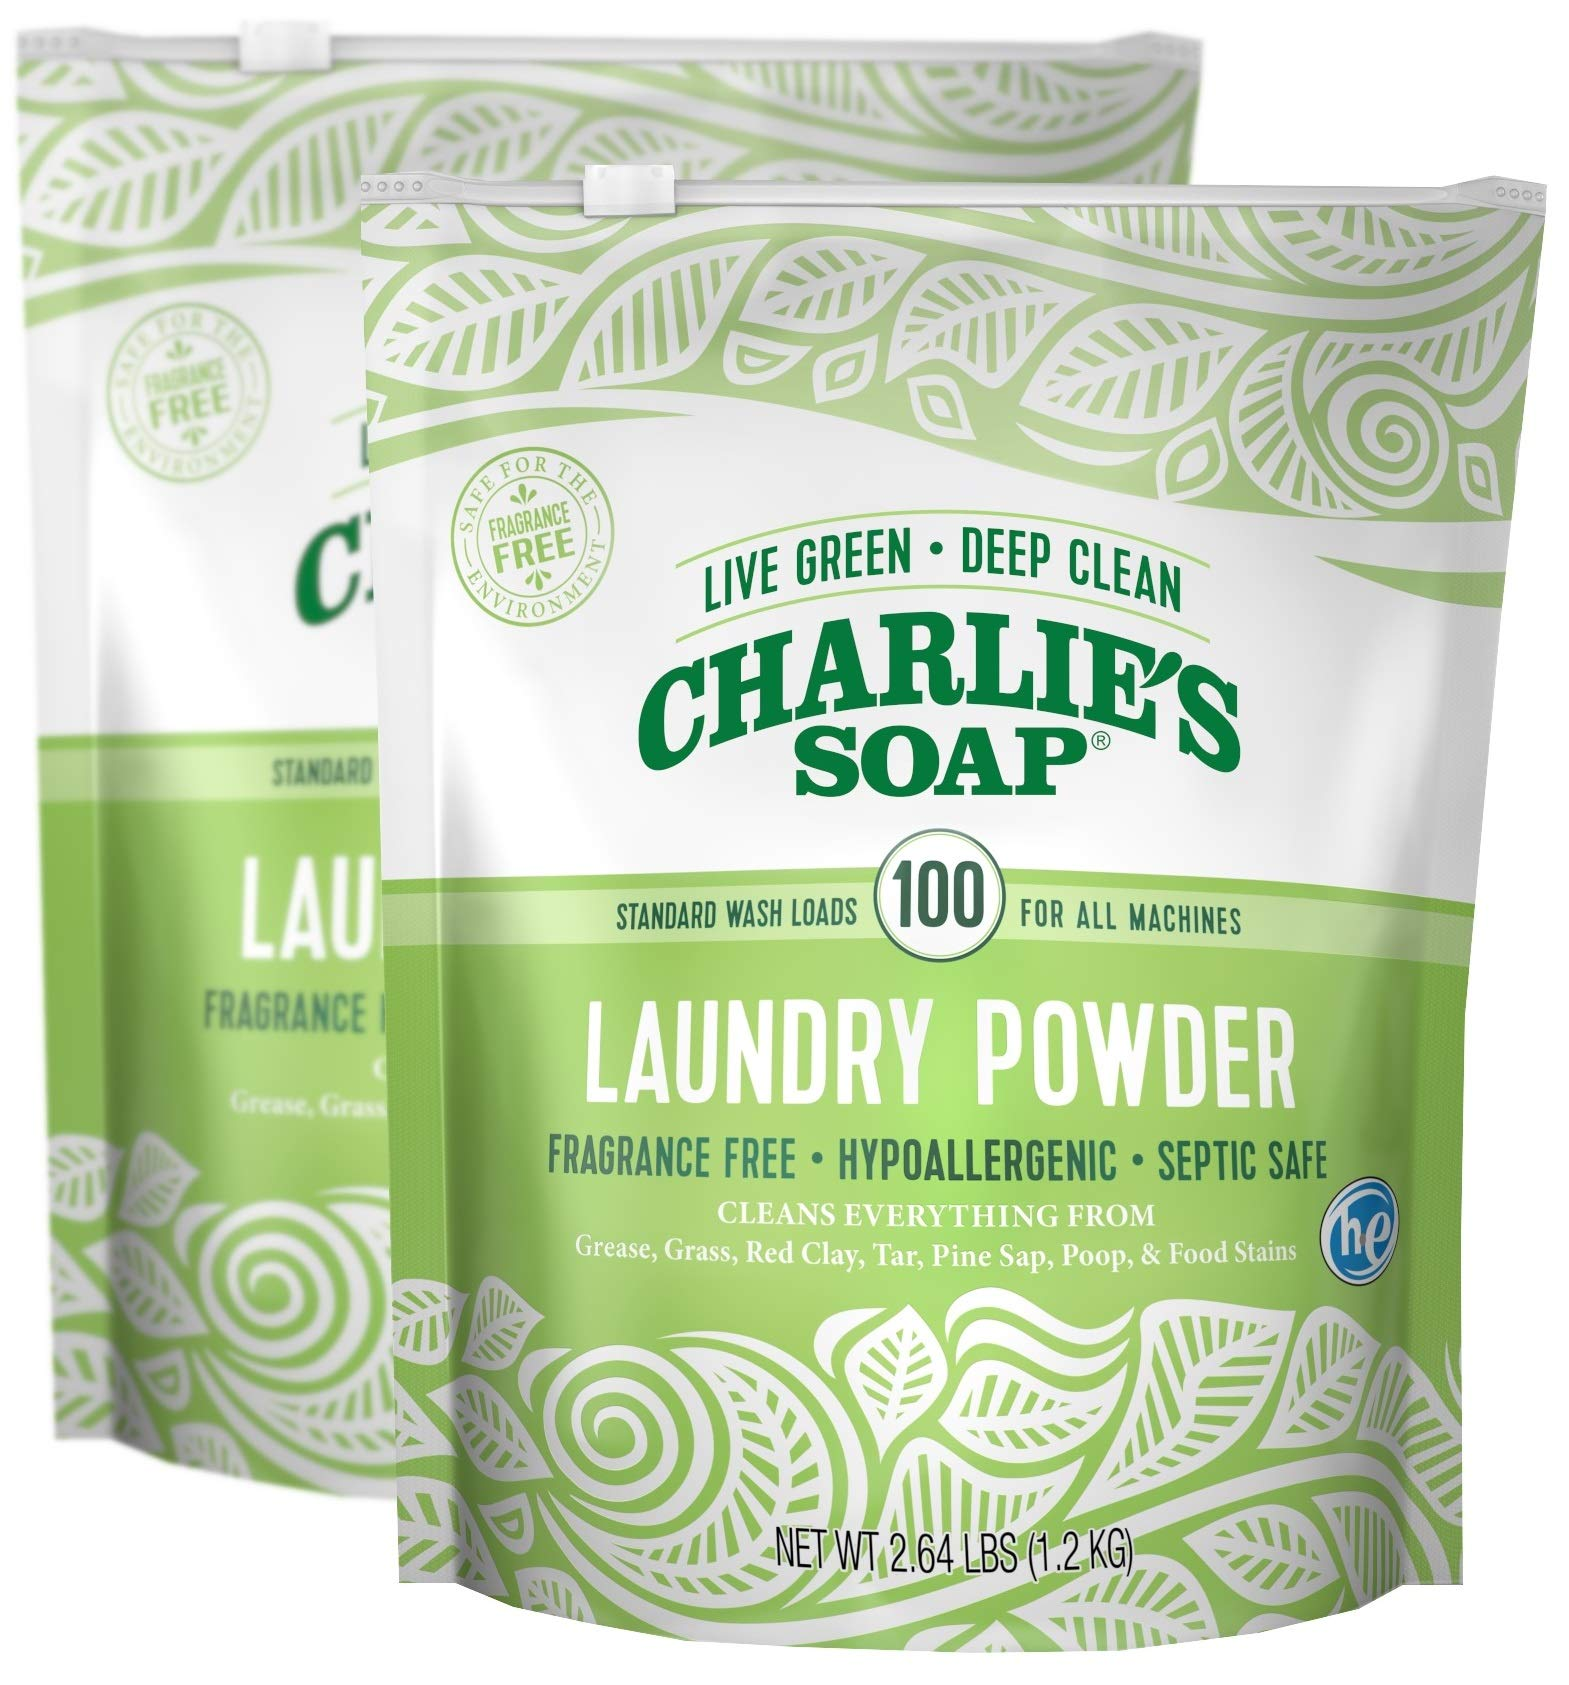 Charlie's Soap - Fragrance Free Laundry Powder - 100 Loads (Two 100-load Bags, 200 Total Loads)